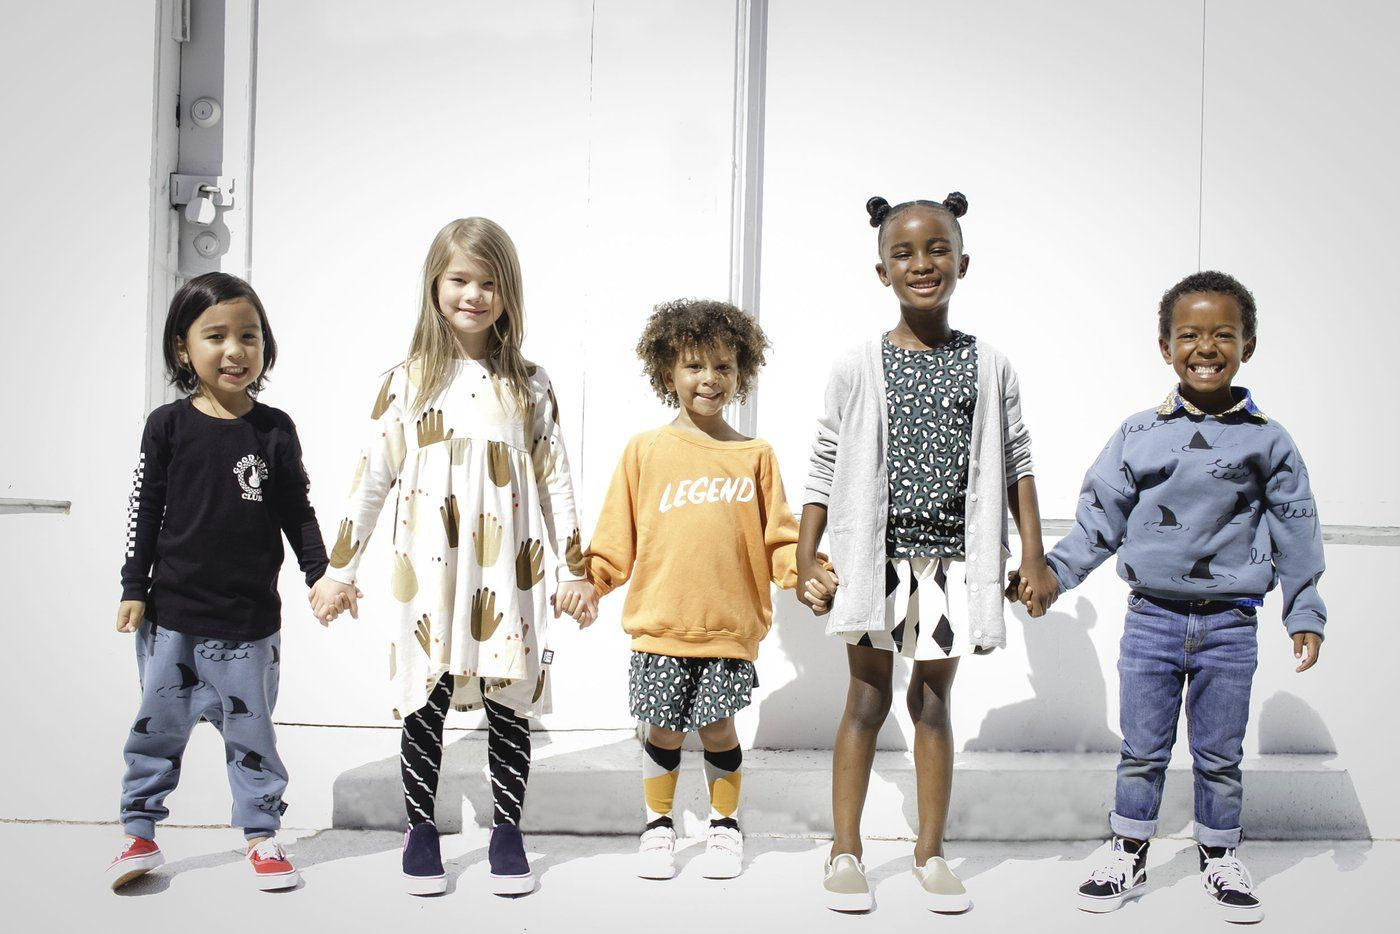 758780ec3a Stylish and affordable tops, pants, dresses, and shoes for baby, infants,  toddlers, boys & girls. We're a modern children's lifestyle ...